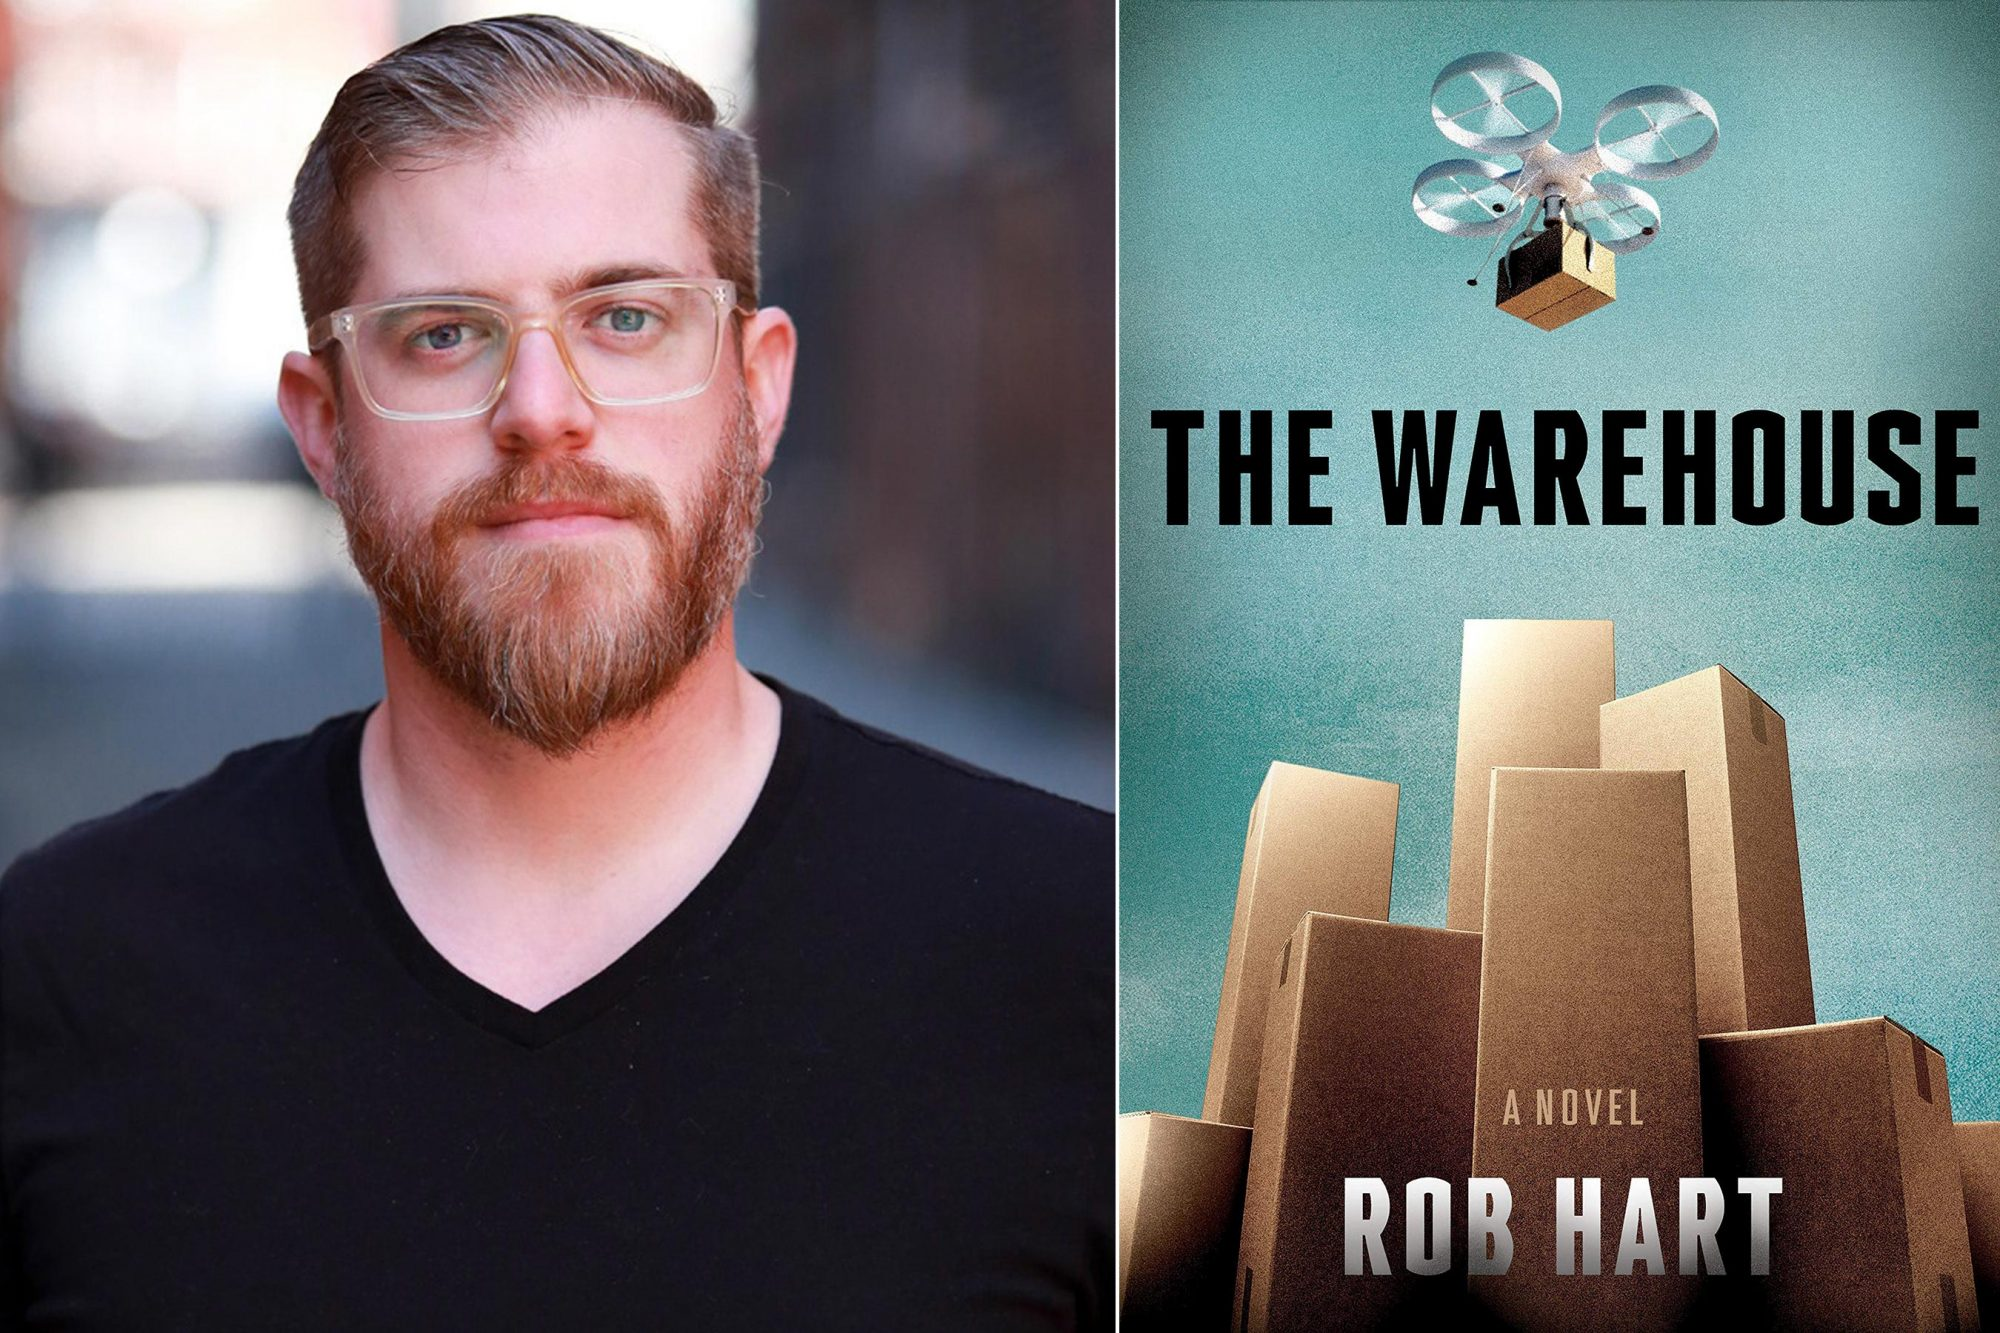 Rob Hart author photo CR: Anna Ty Bergman The Warehouse by Rob Hart CR: Crown